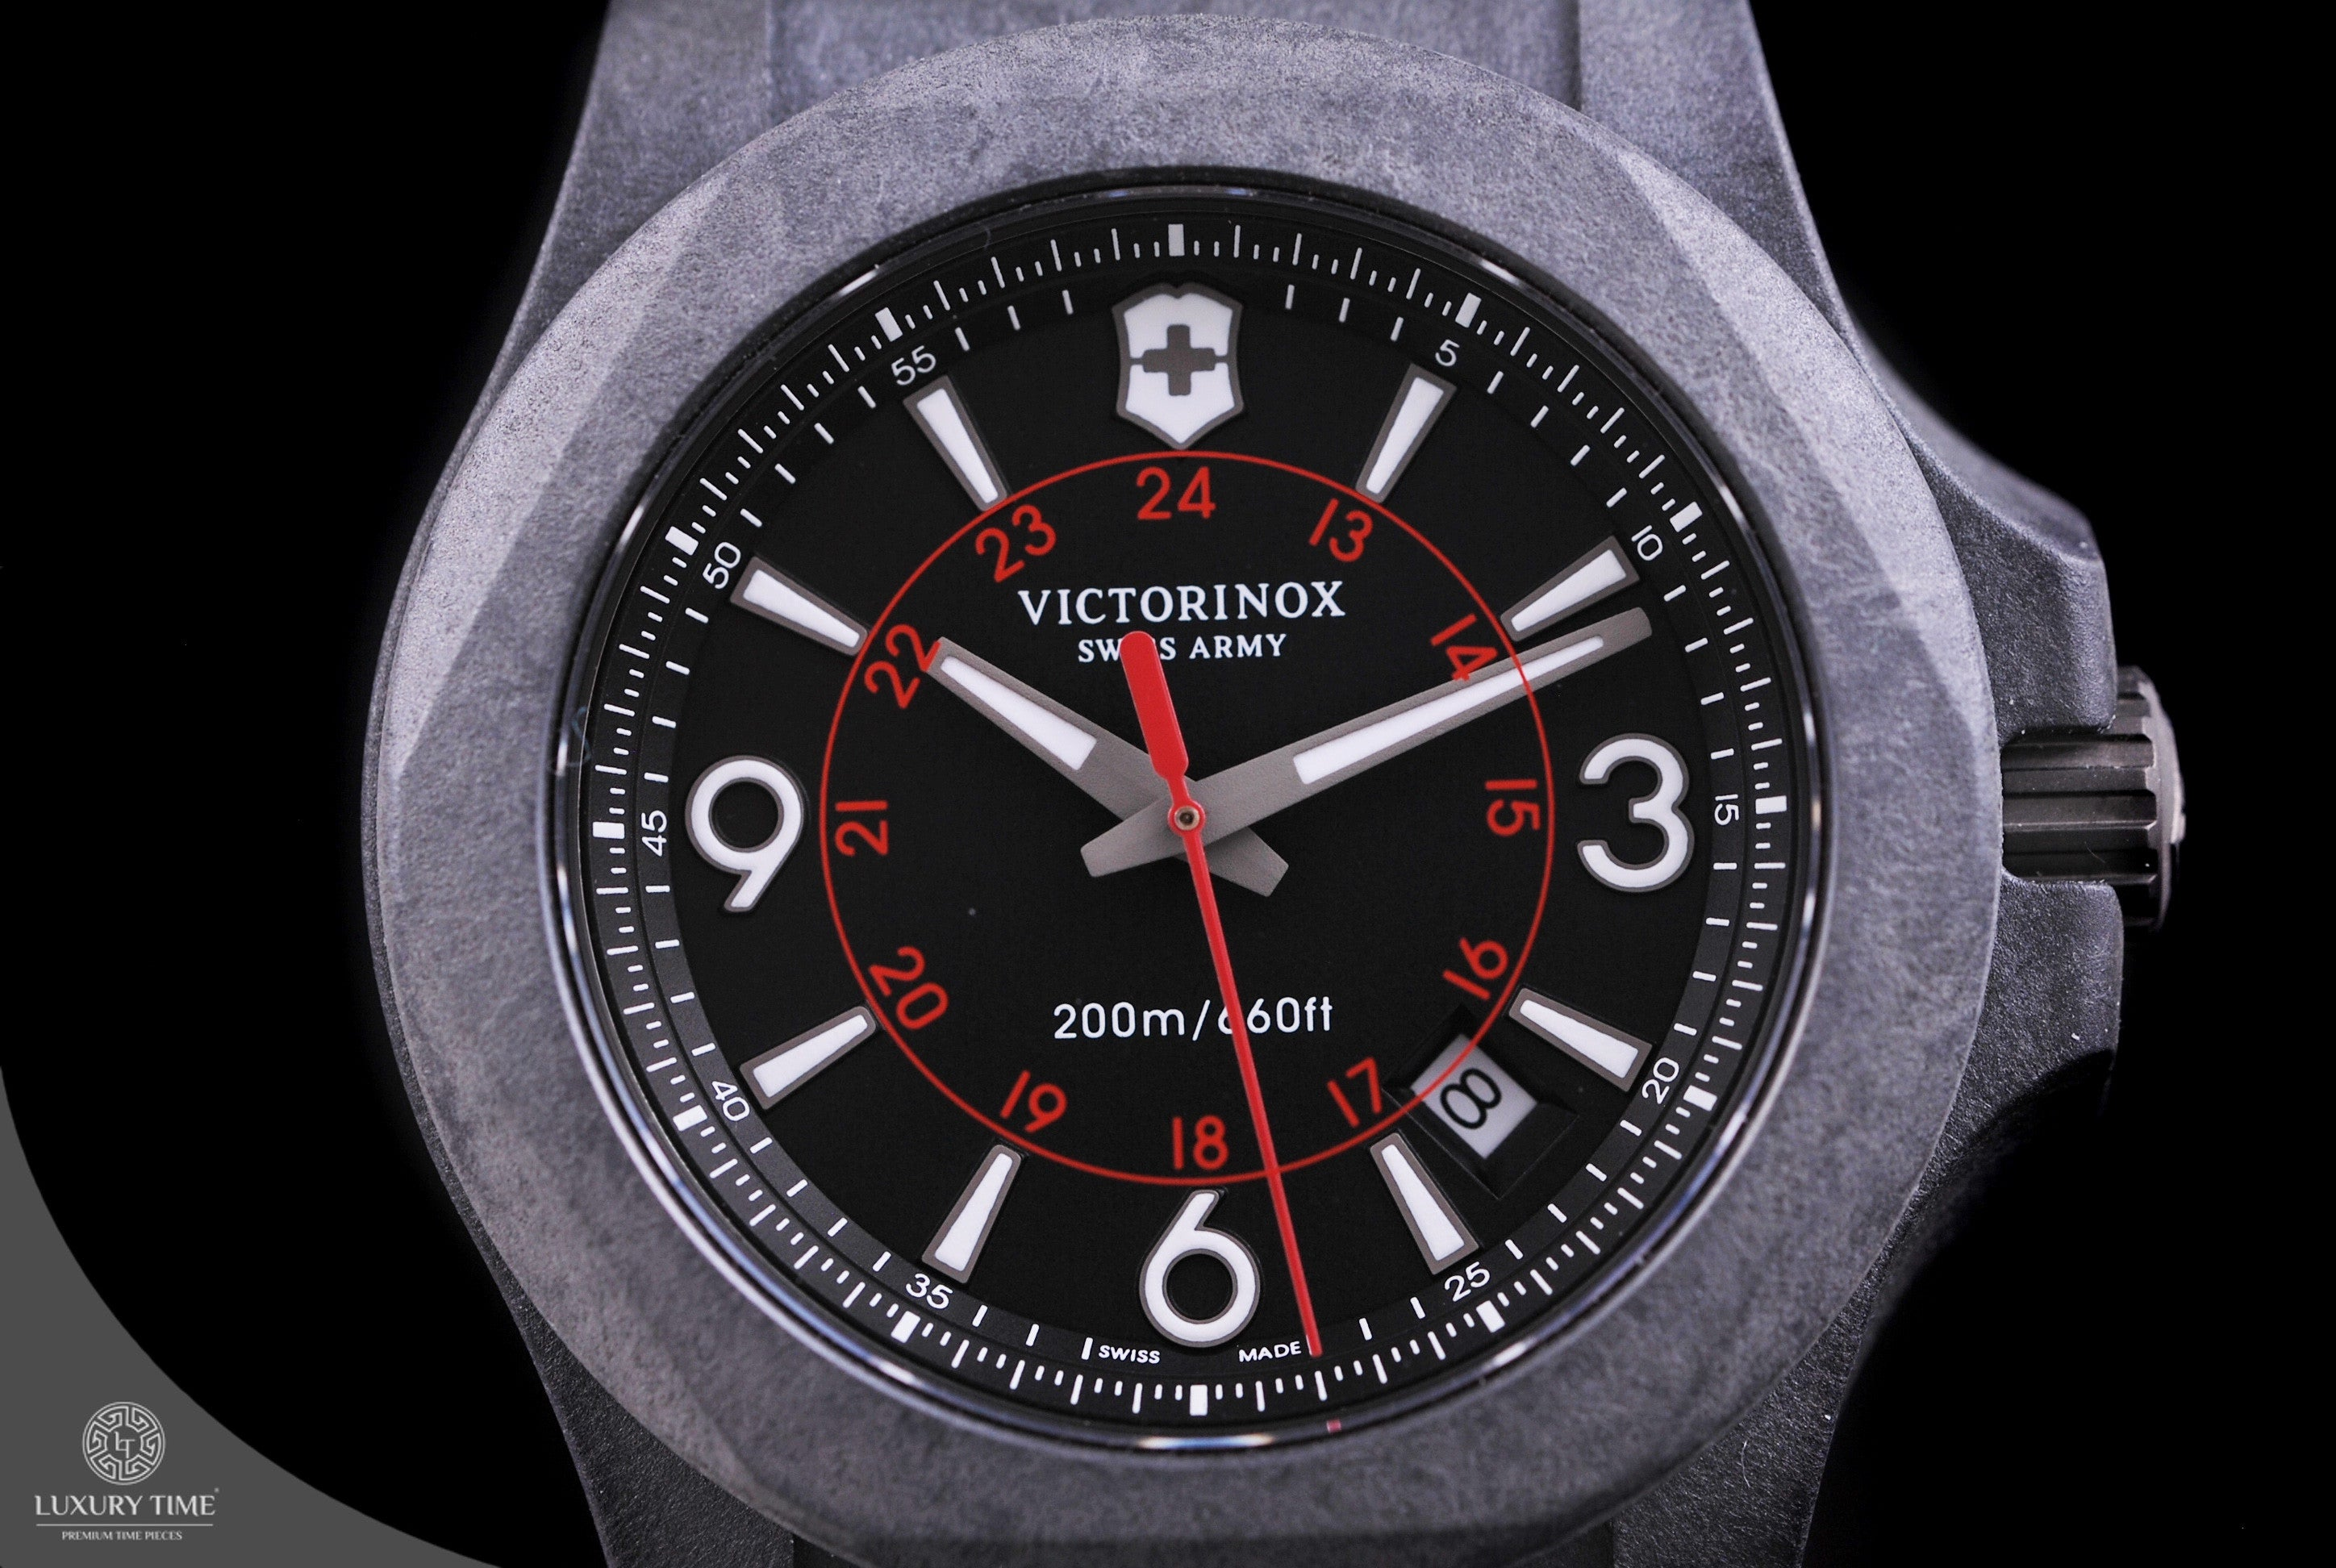 dial product watches s army black chronograph inox watch victor men victorinox chron classic swiss